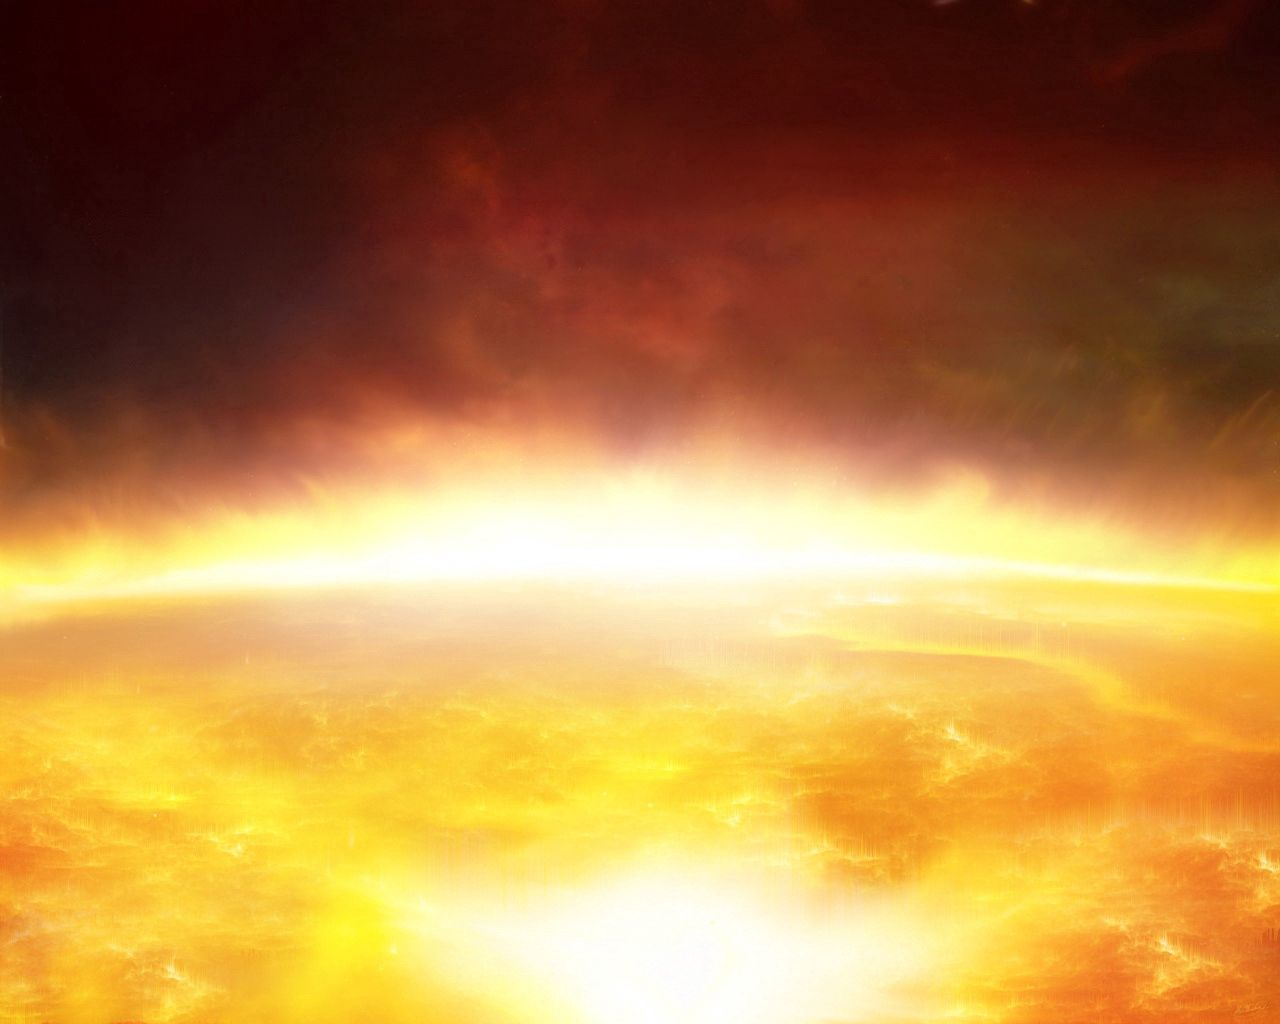 56113 download wallpaper Universe, Fire, Sun, Heat, Temperature screensavers and pictures for free